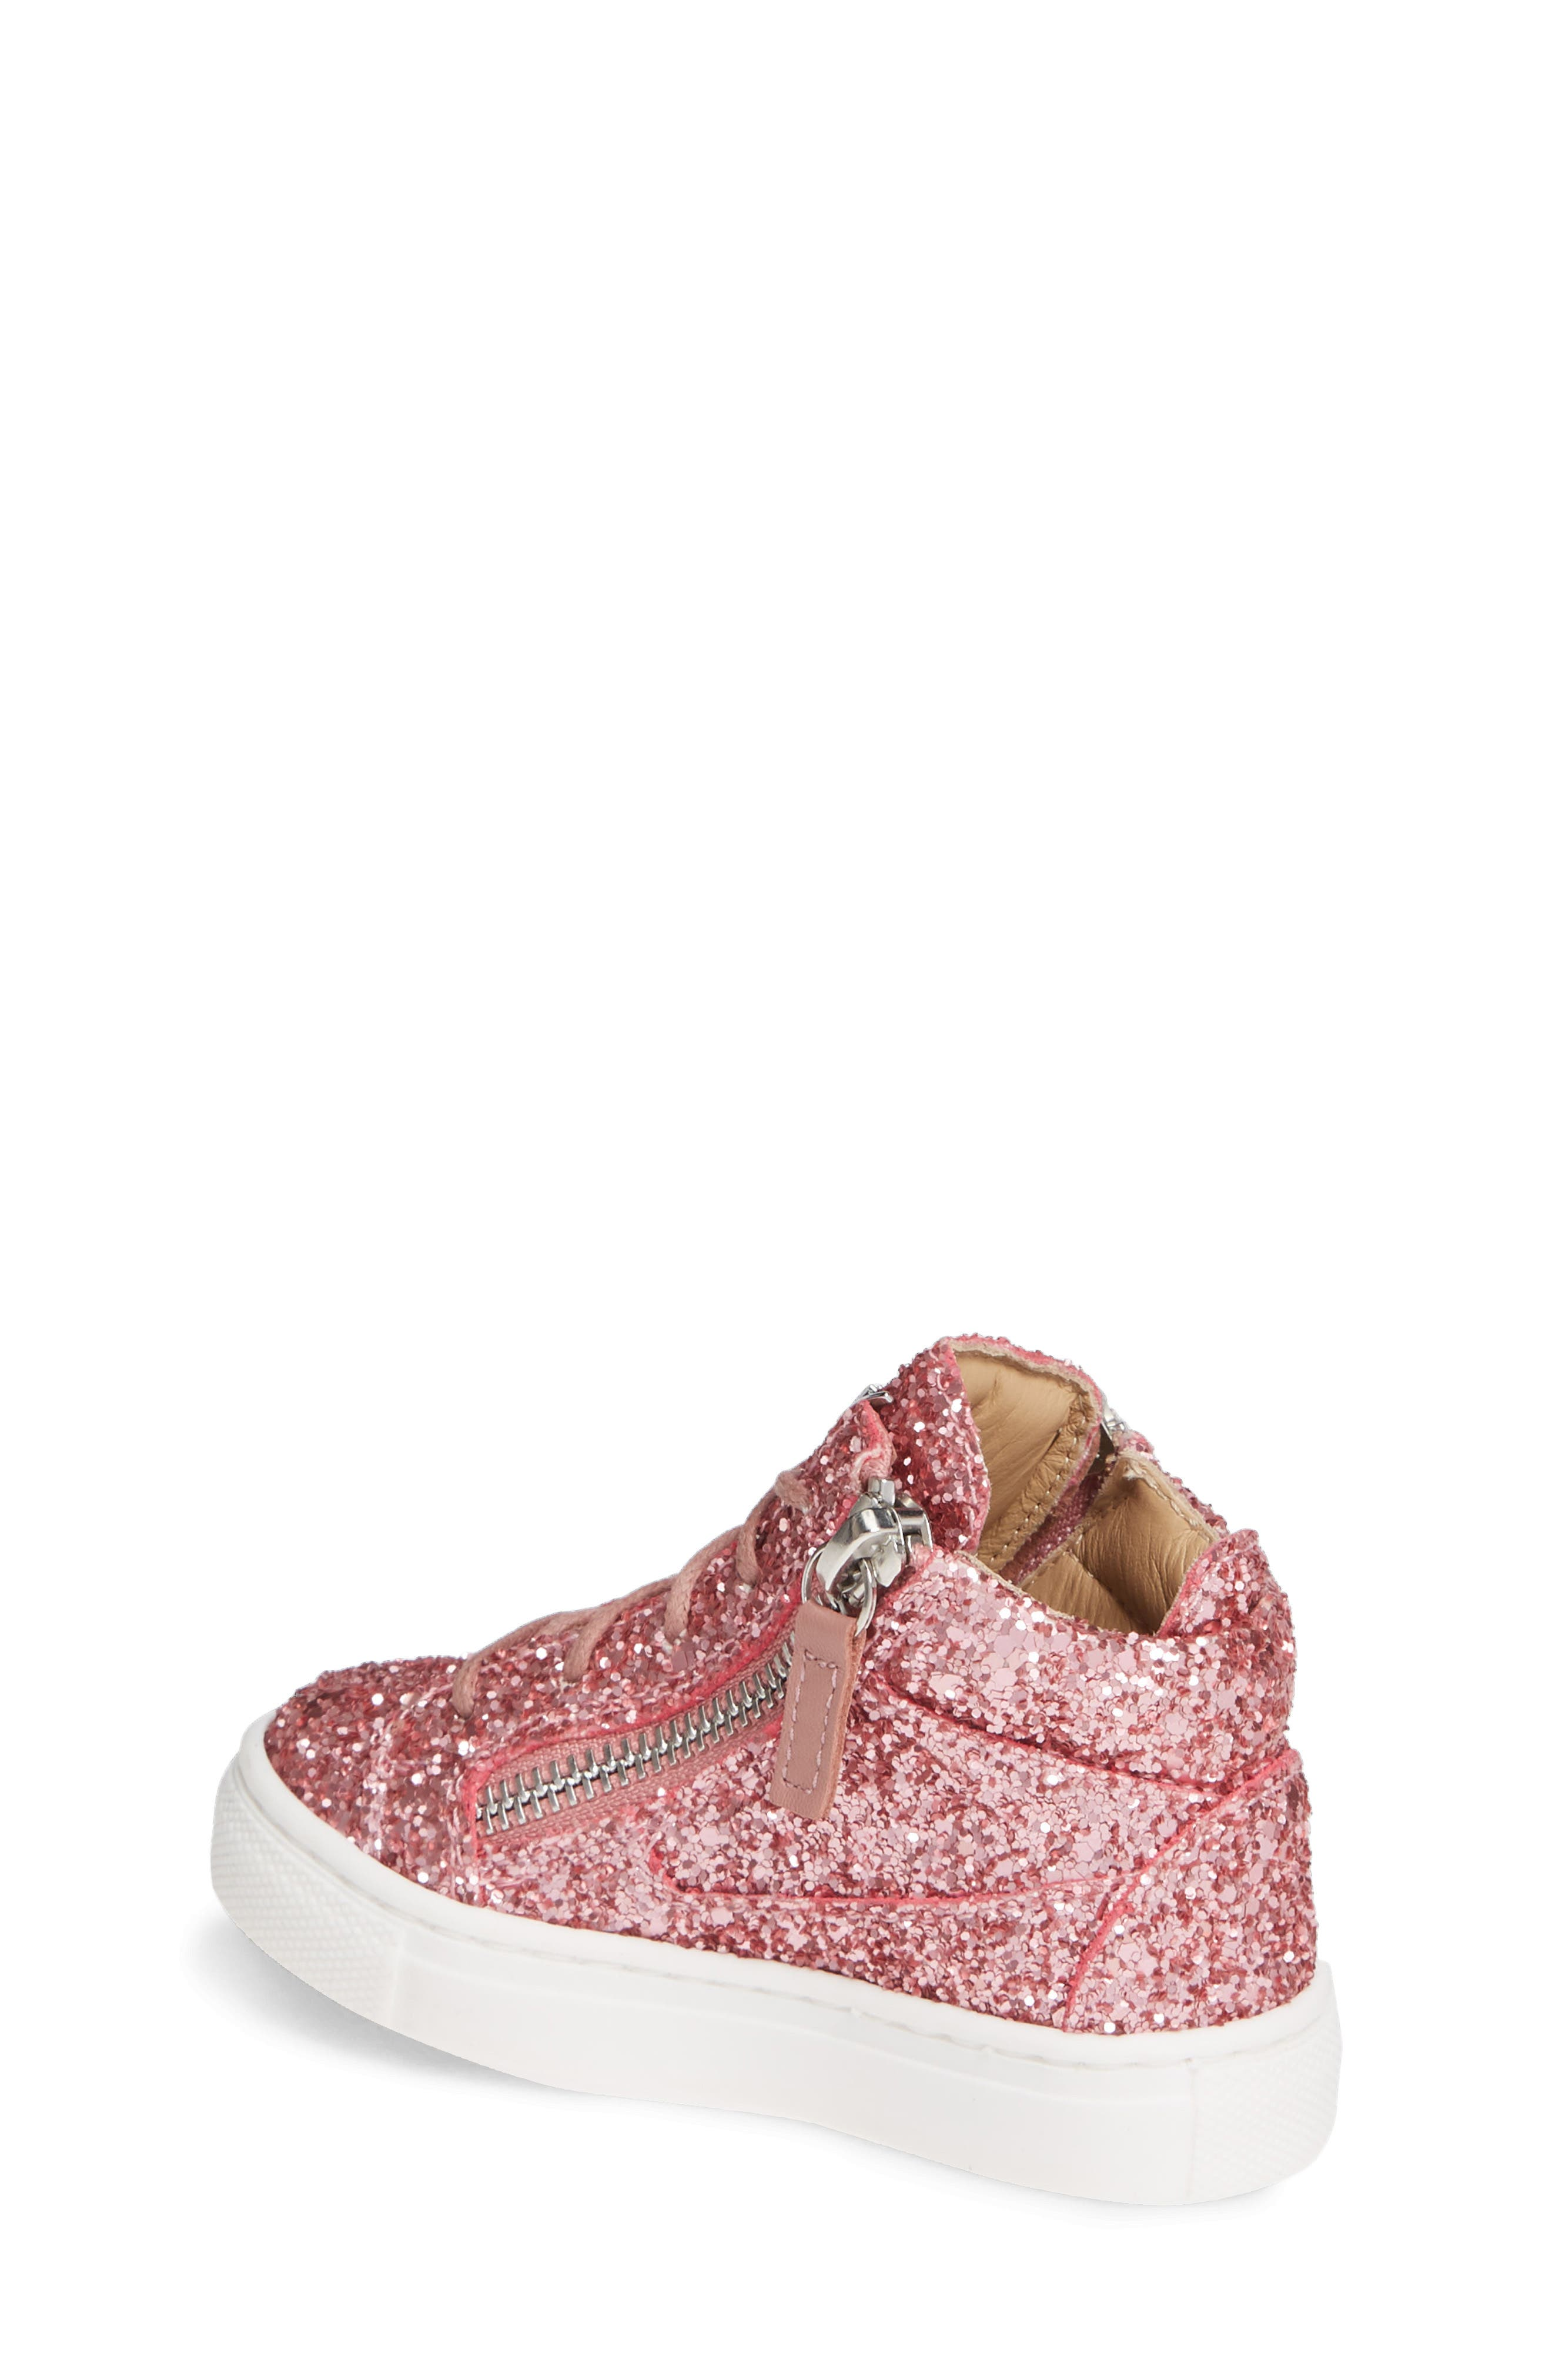 GIUSEPPE ZANOTTI, Natalie High Top Sneaker, Alternate thumbnail 2, color, LIPGLOSS